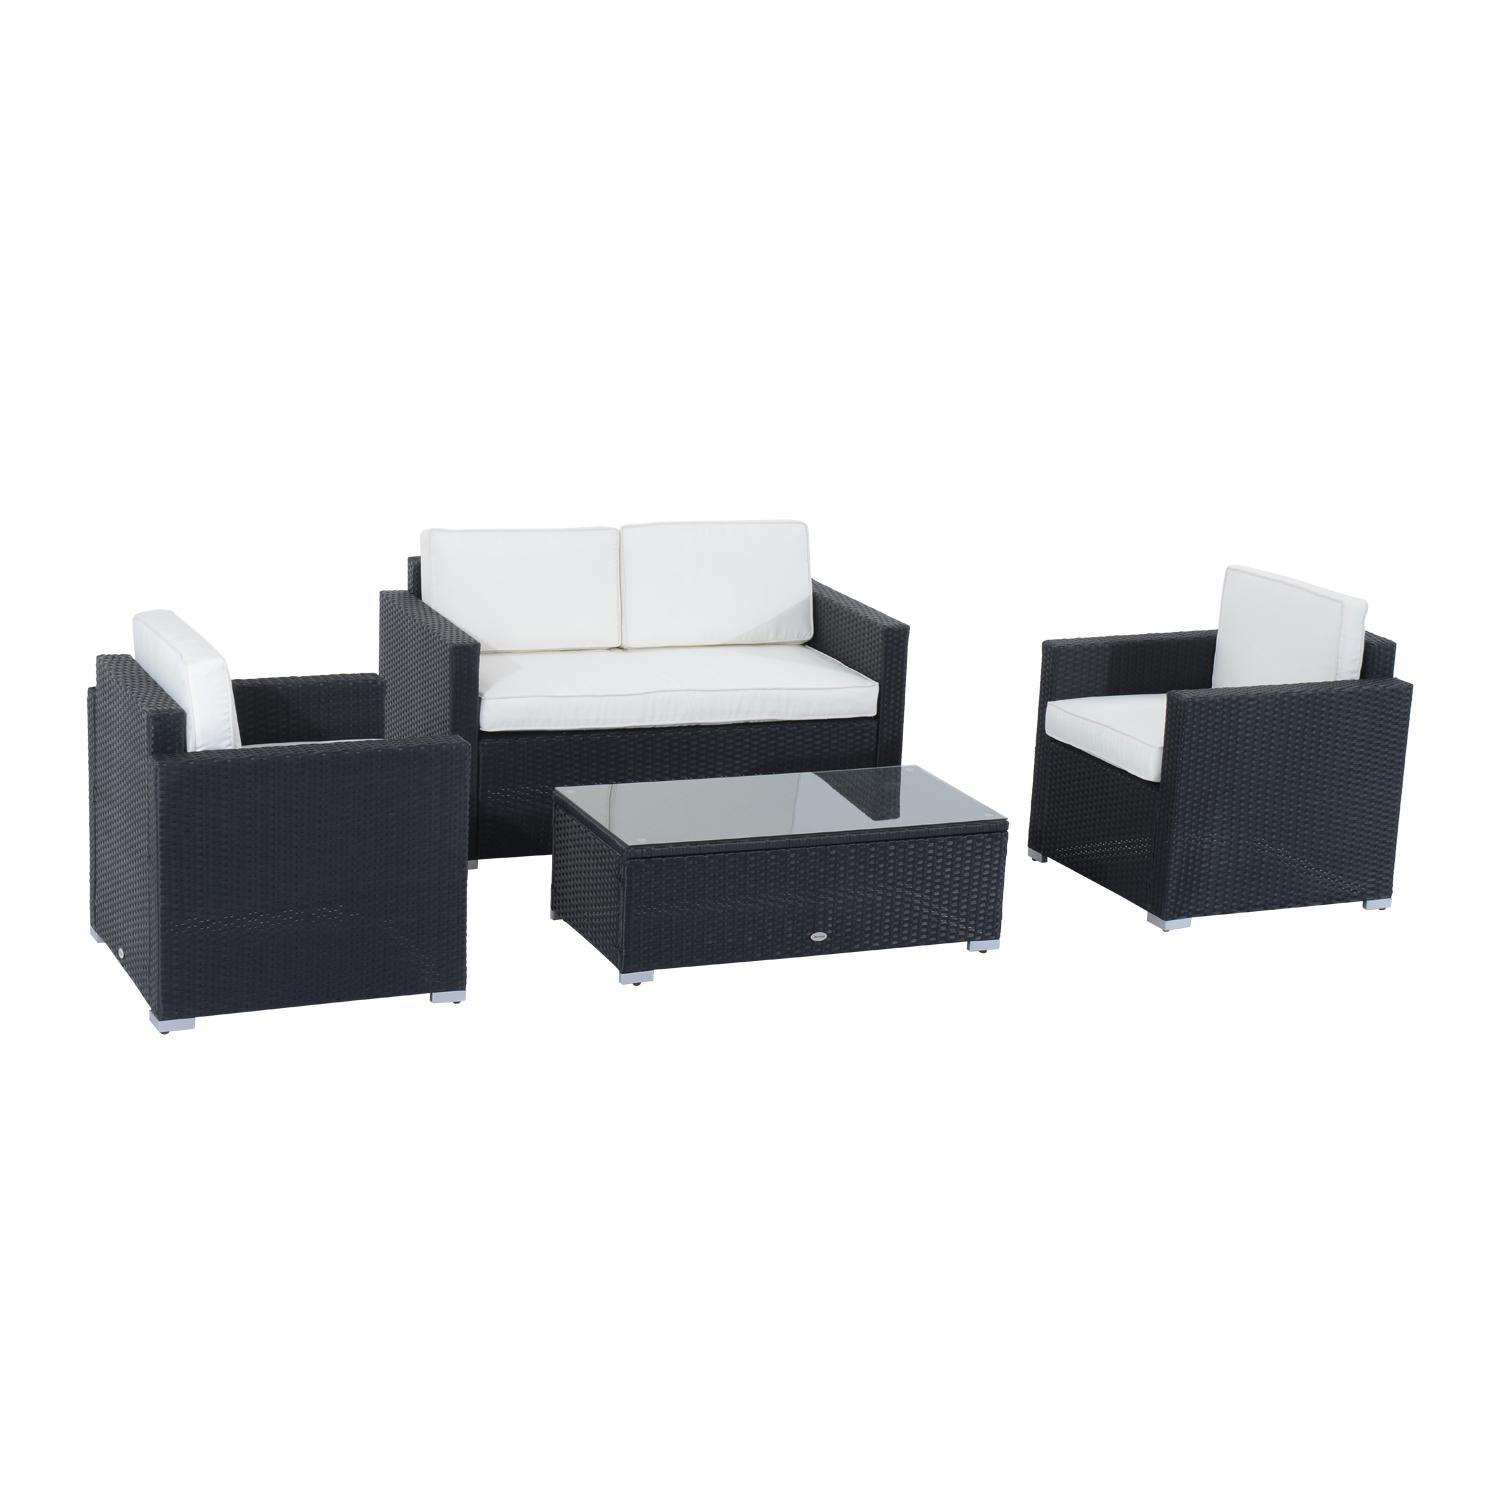 Amazoncom Outsunny 4 Piece Cushioned Outdoor Rattan Wicker Sofa Sectional Patio Furniture Set